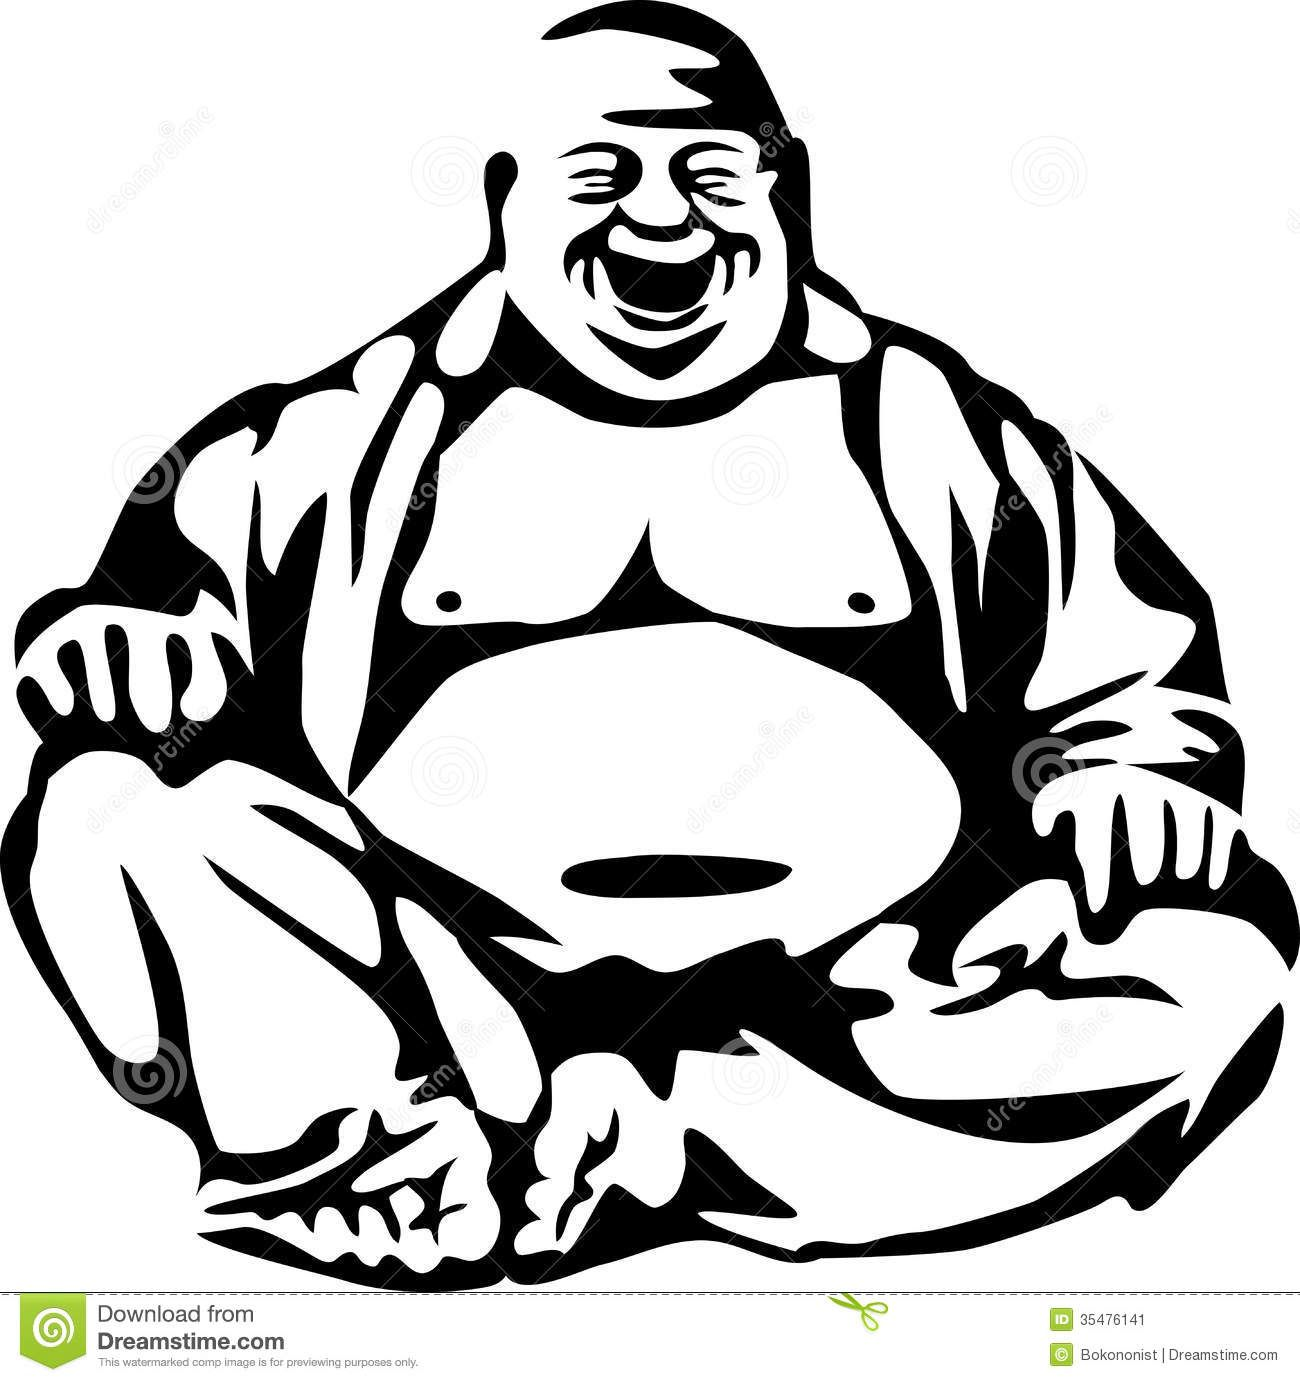 Laughing buddha art stylized laughing buddha black and white illustration 1300 1382